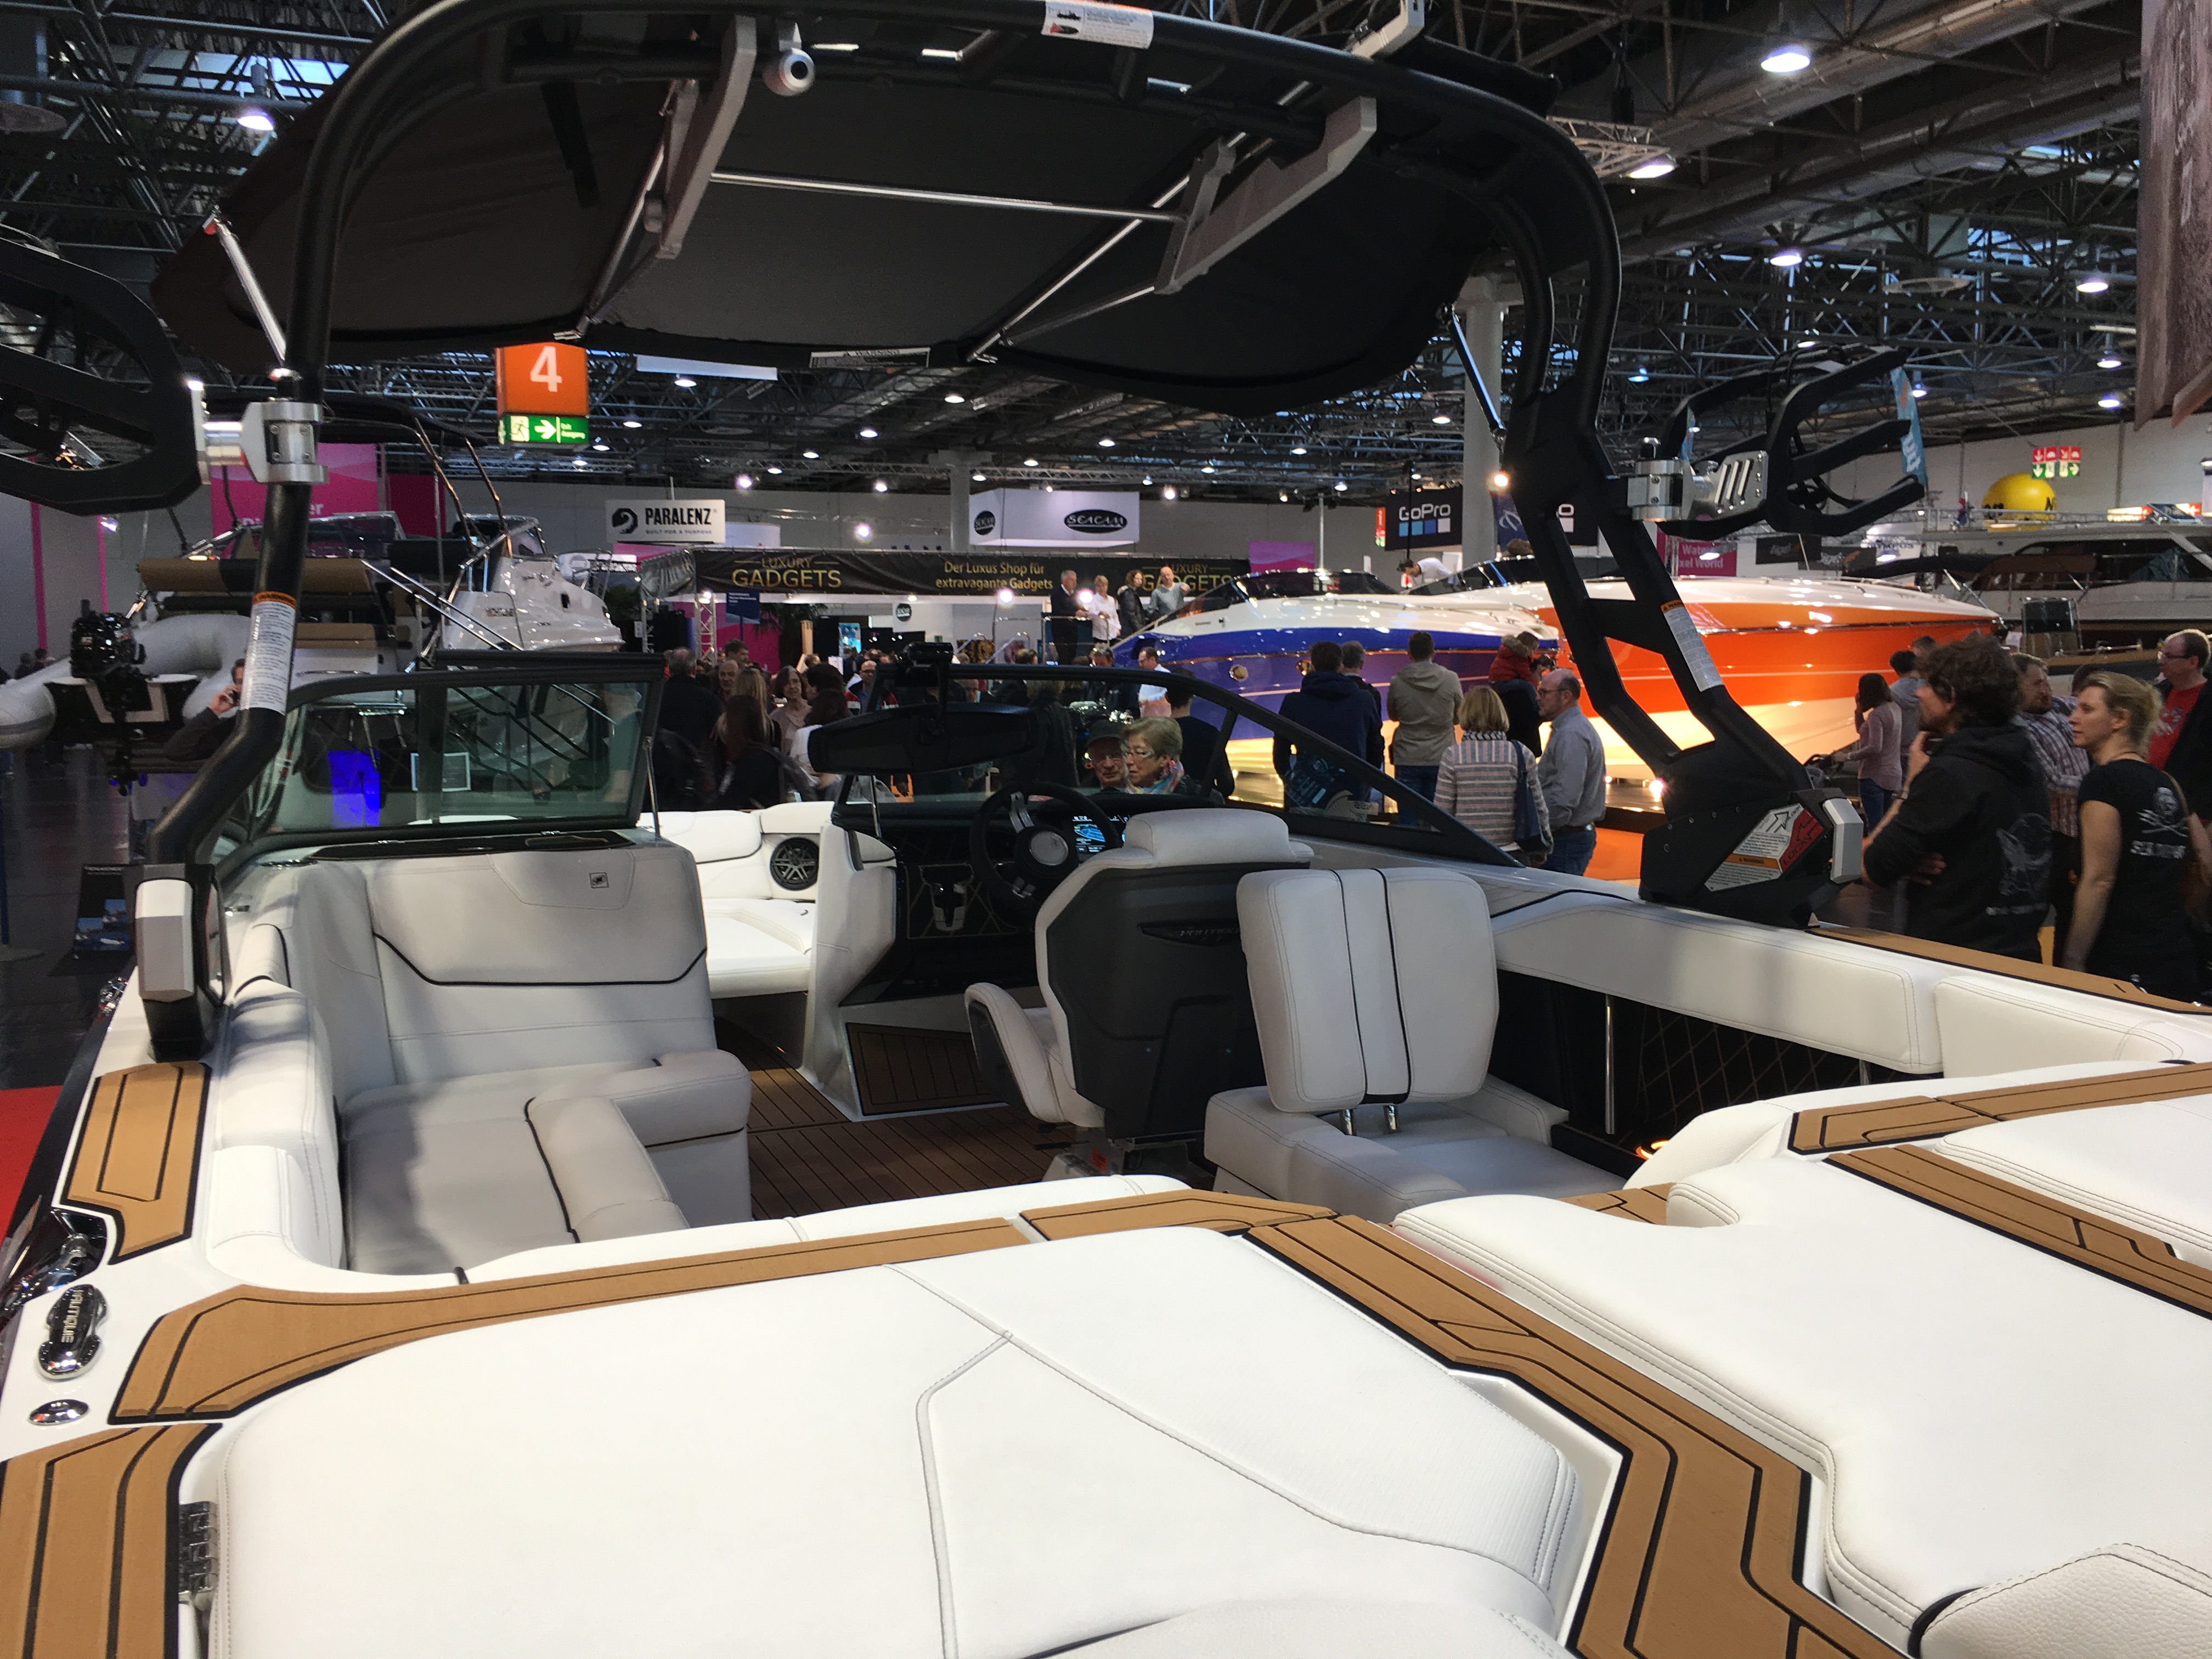 201801_CPS_Salon Boot Düsseldorf_036